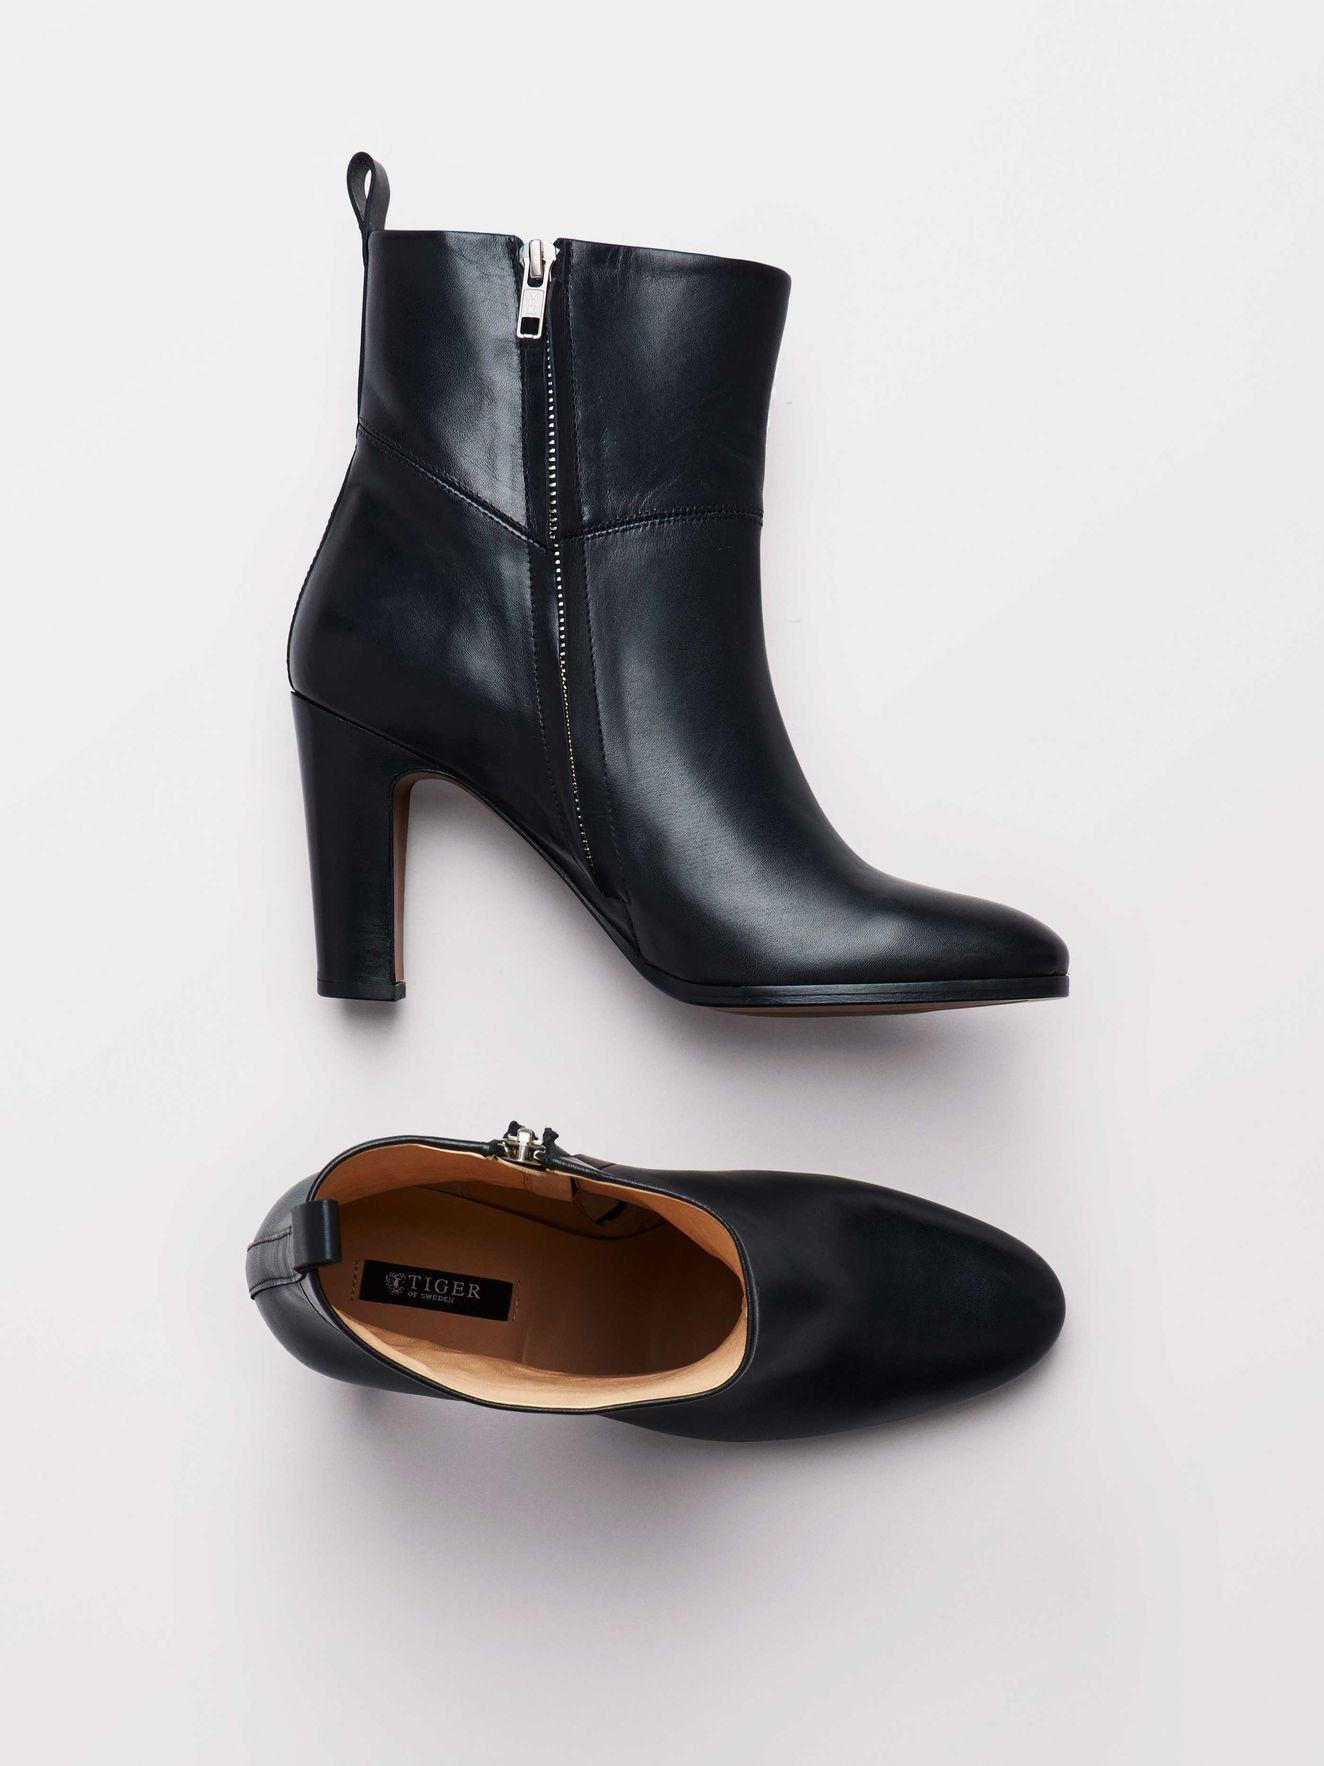 414b01221ac Dolicho Boots in Black from Tiger of Sweden | Outfits | Boots ...